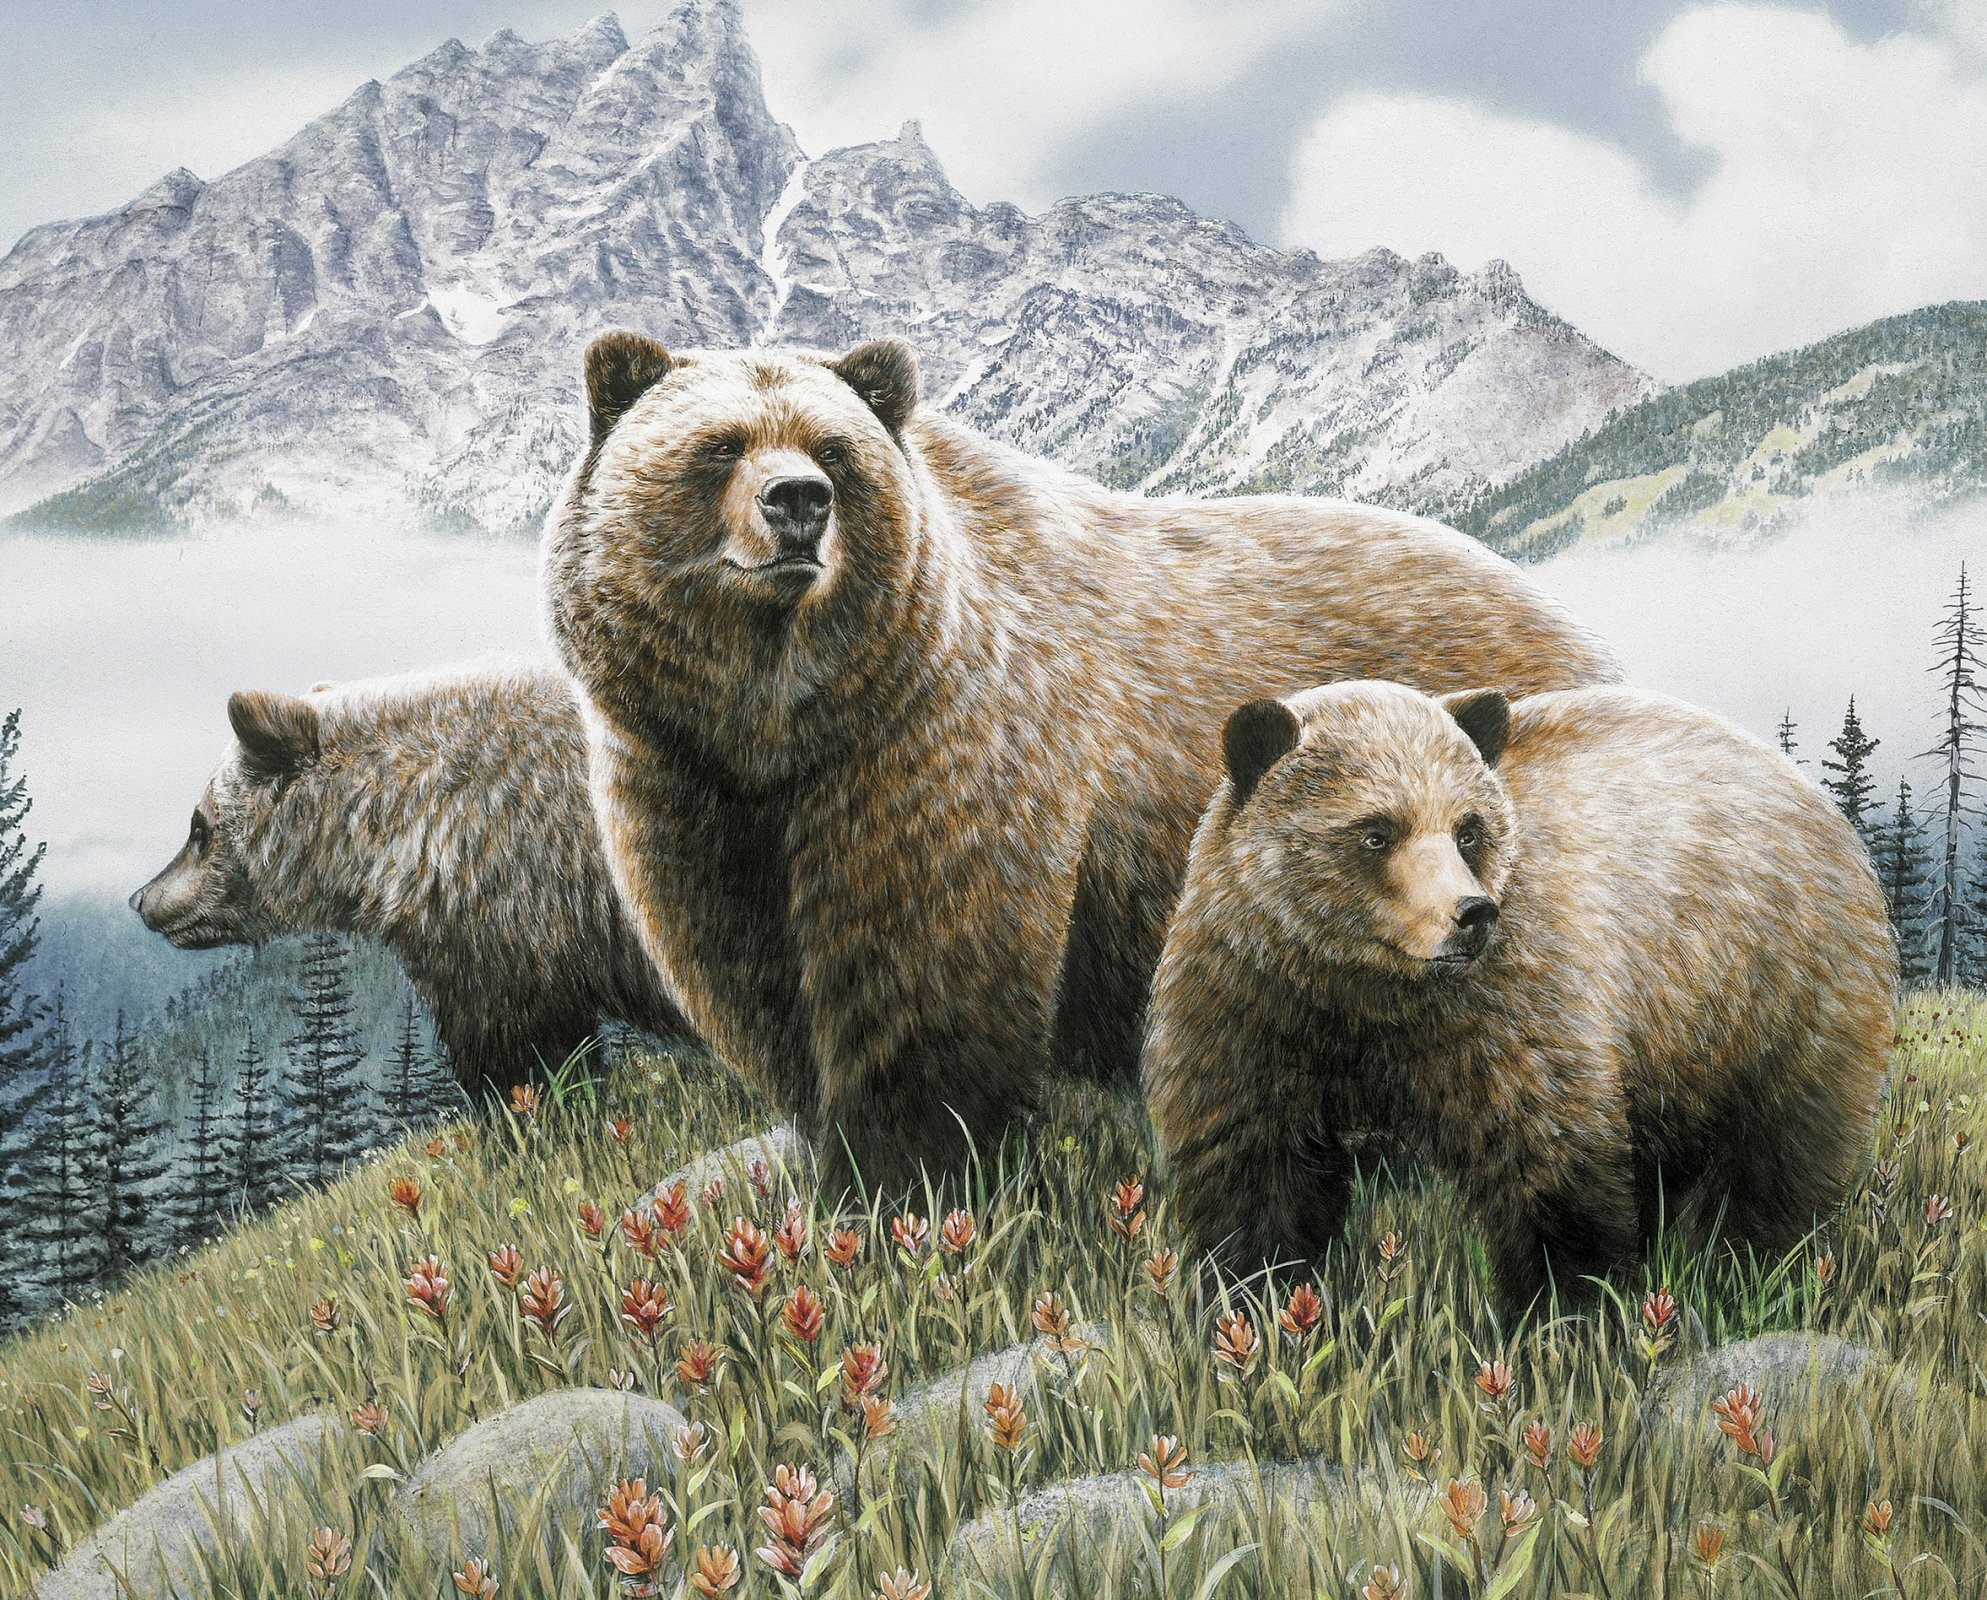 DT-Exclusives Prints WW-3131-1 Bears in the Mountains